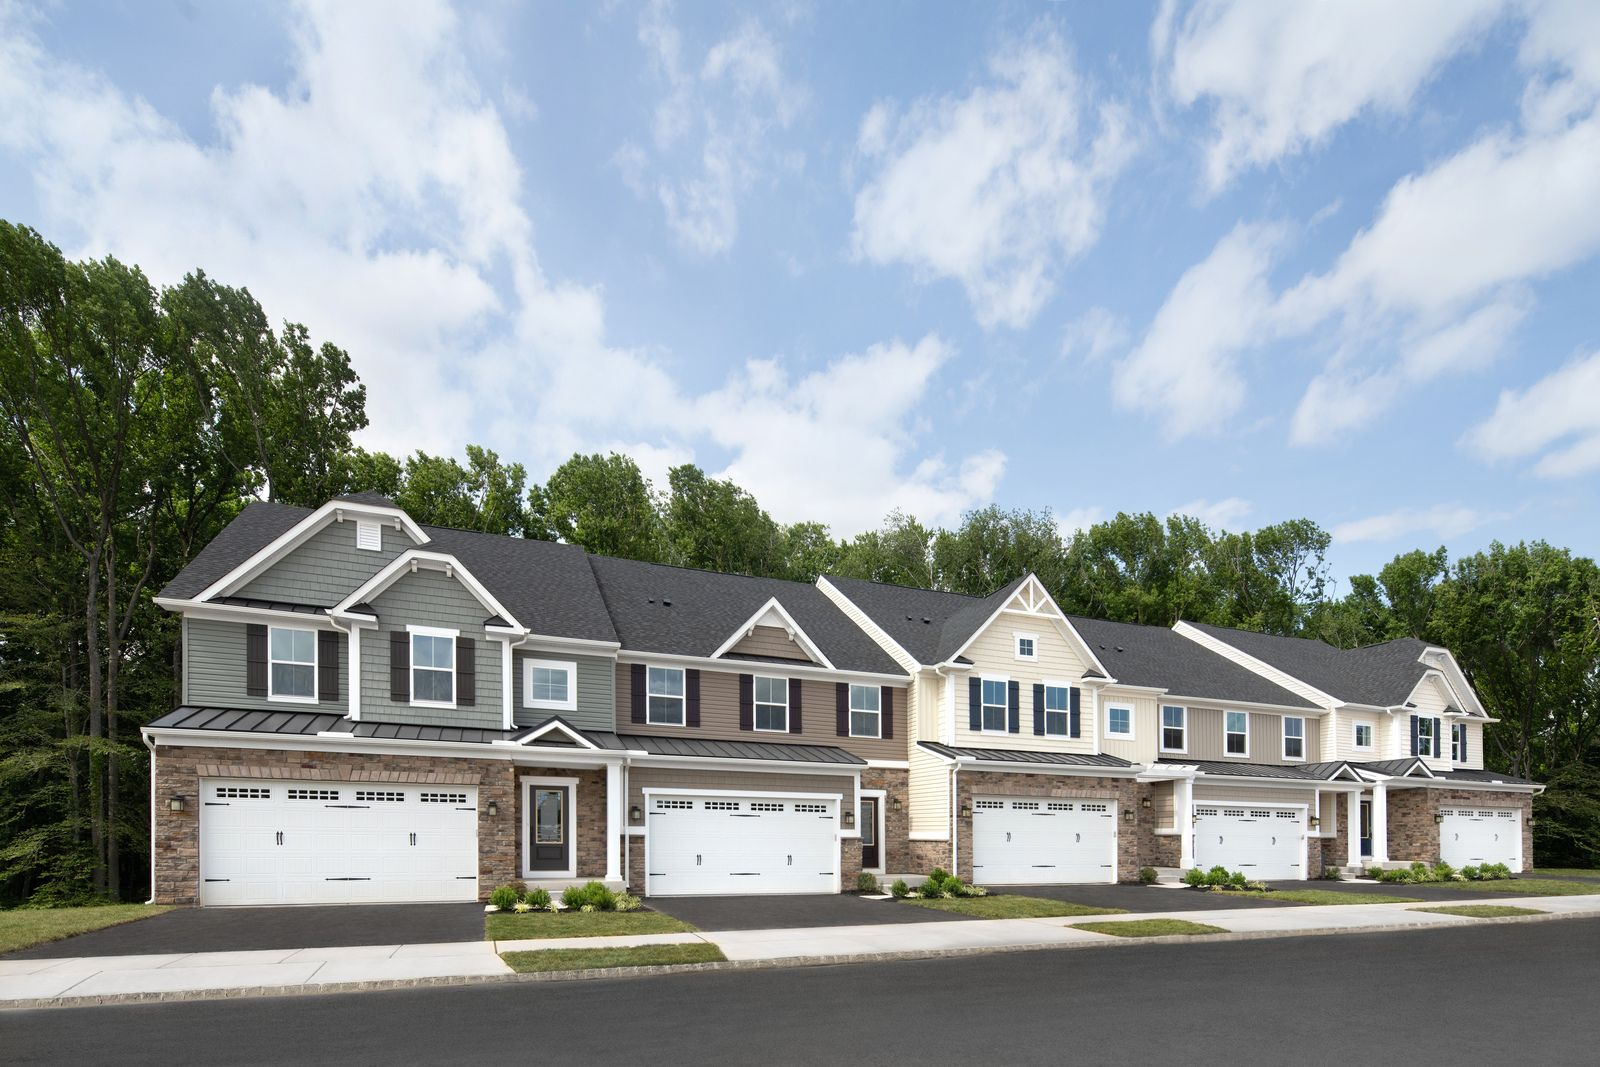 WELCOME TO YARDLEY WOODS 55+:The only new 55+ homes with luxury features in a small, wooded community with a low HOA, convenient to NJ, I-95 and commuter rail, from the mid $400s.Click here to schedule your appointment!